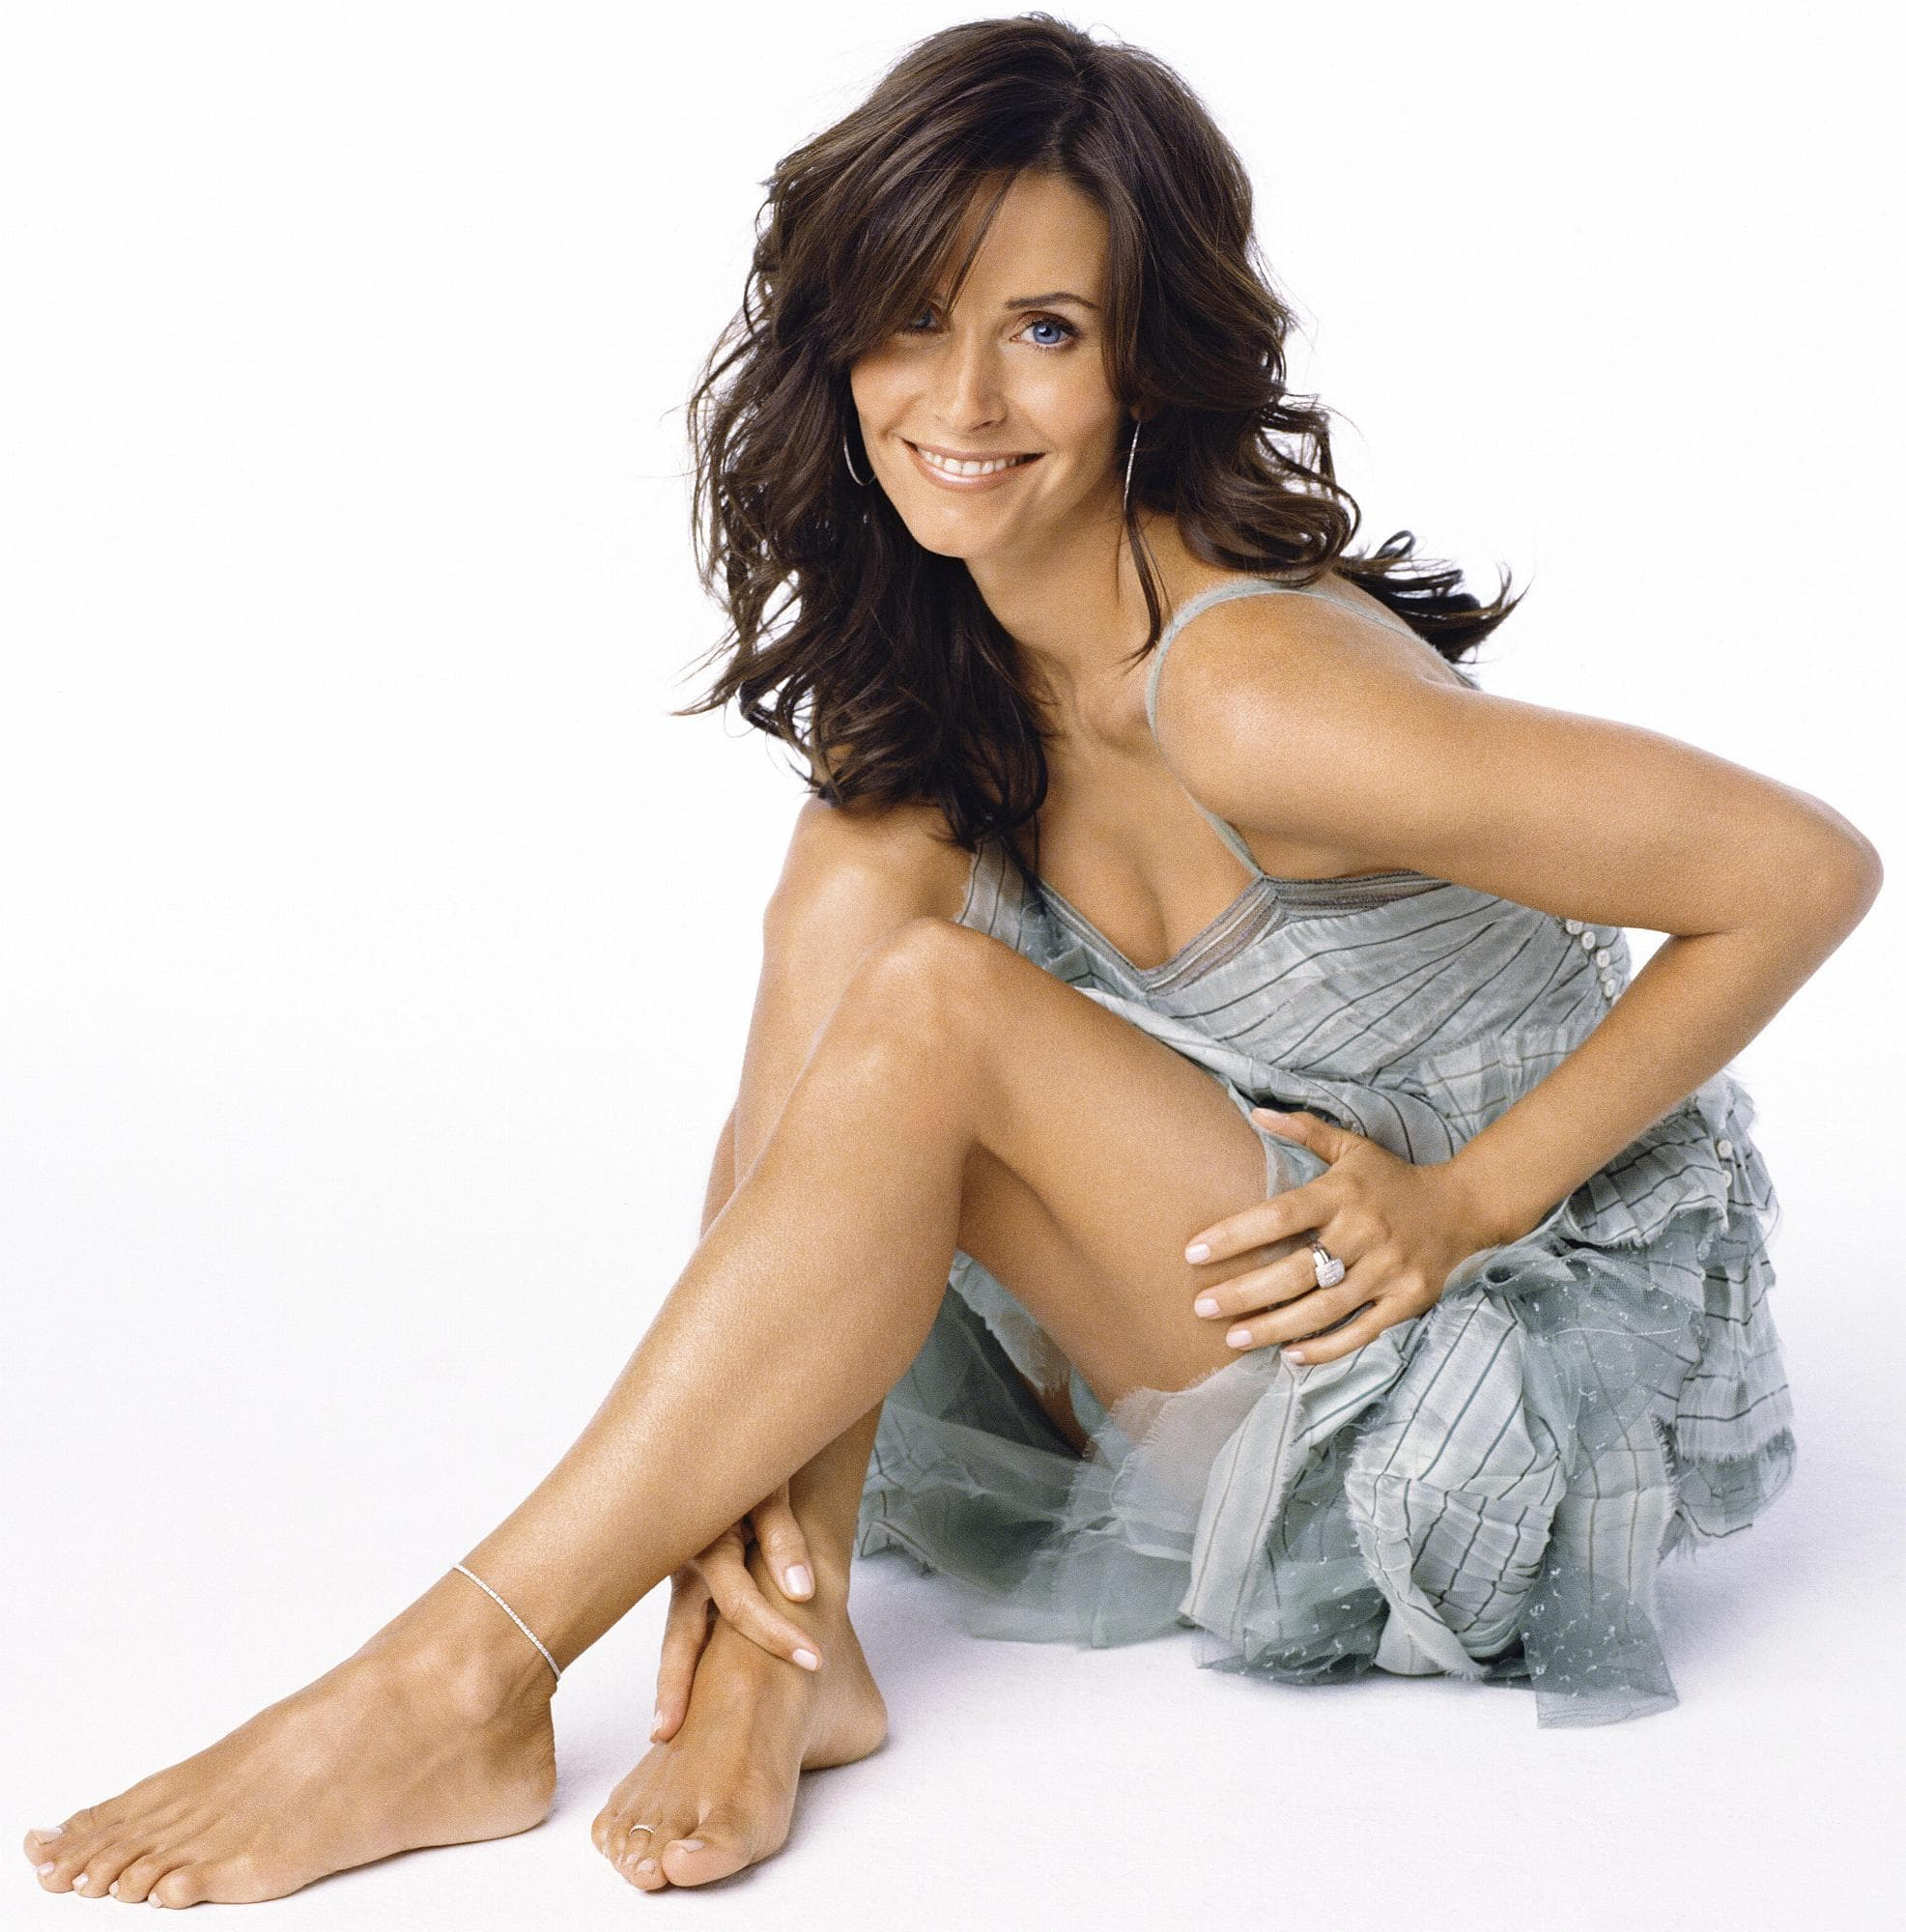 Courteney Cox Desktop wallpaper